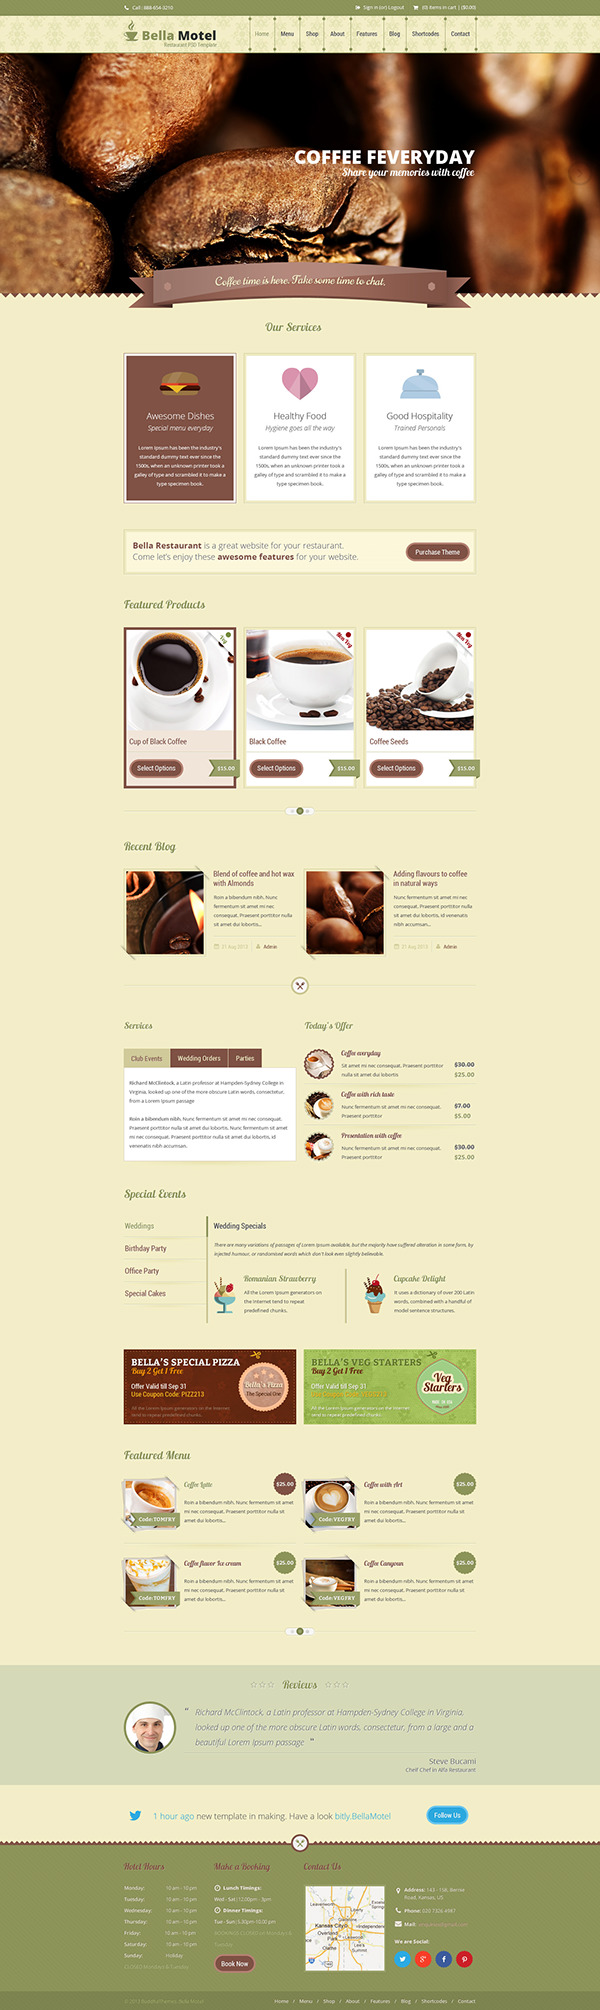 Bella restaurant bakery psd template on pantone canvas for Page 3 salon coimbatore